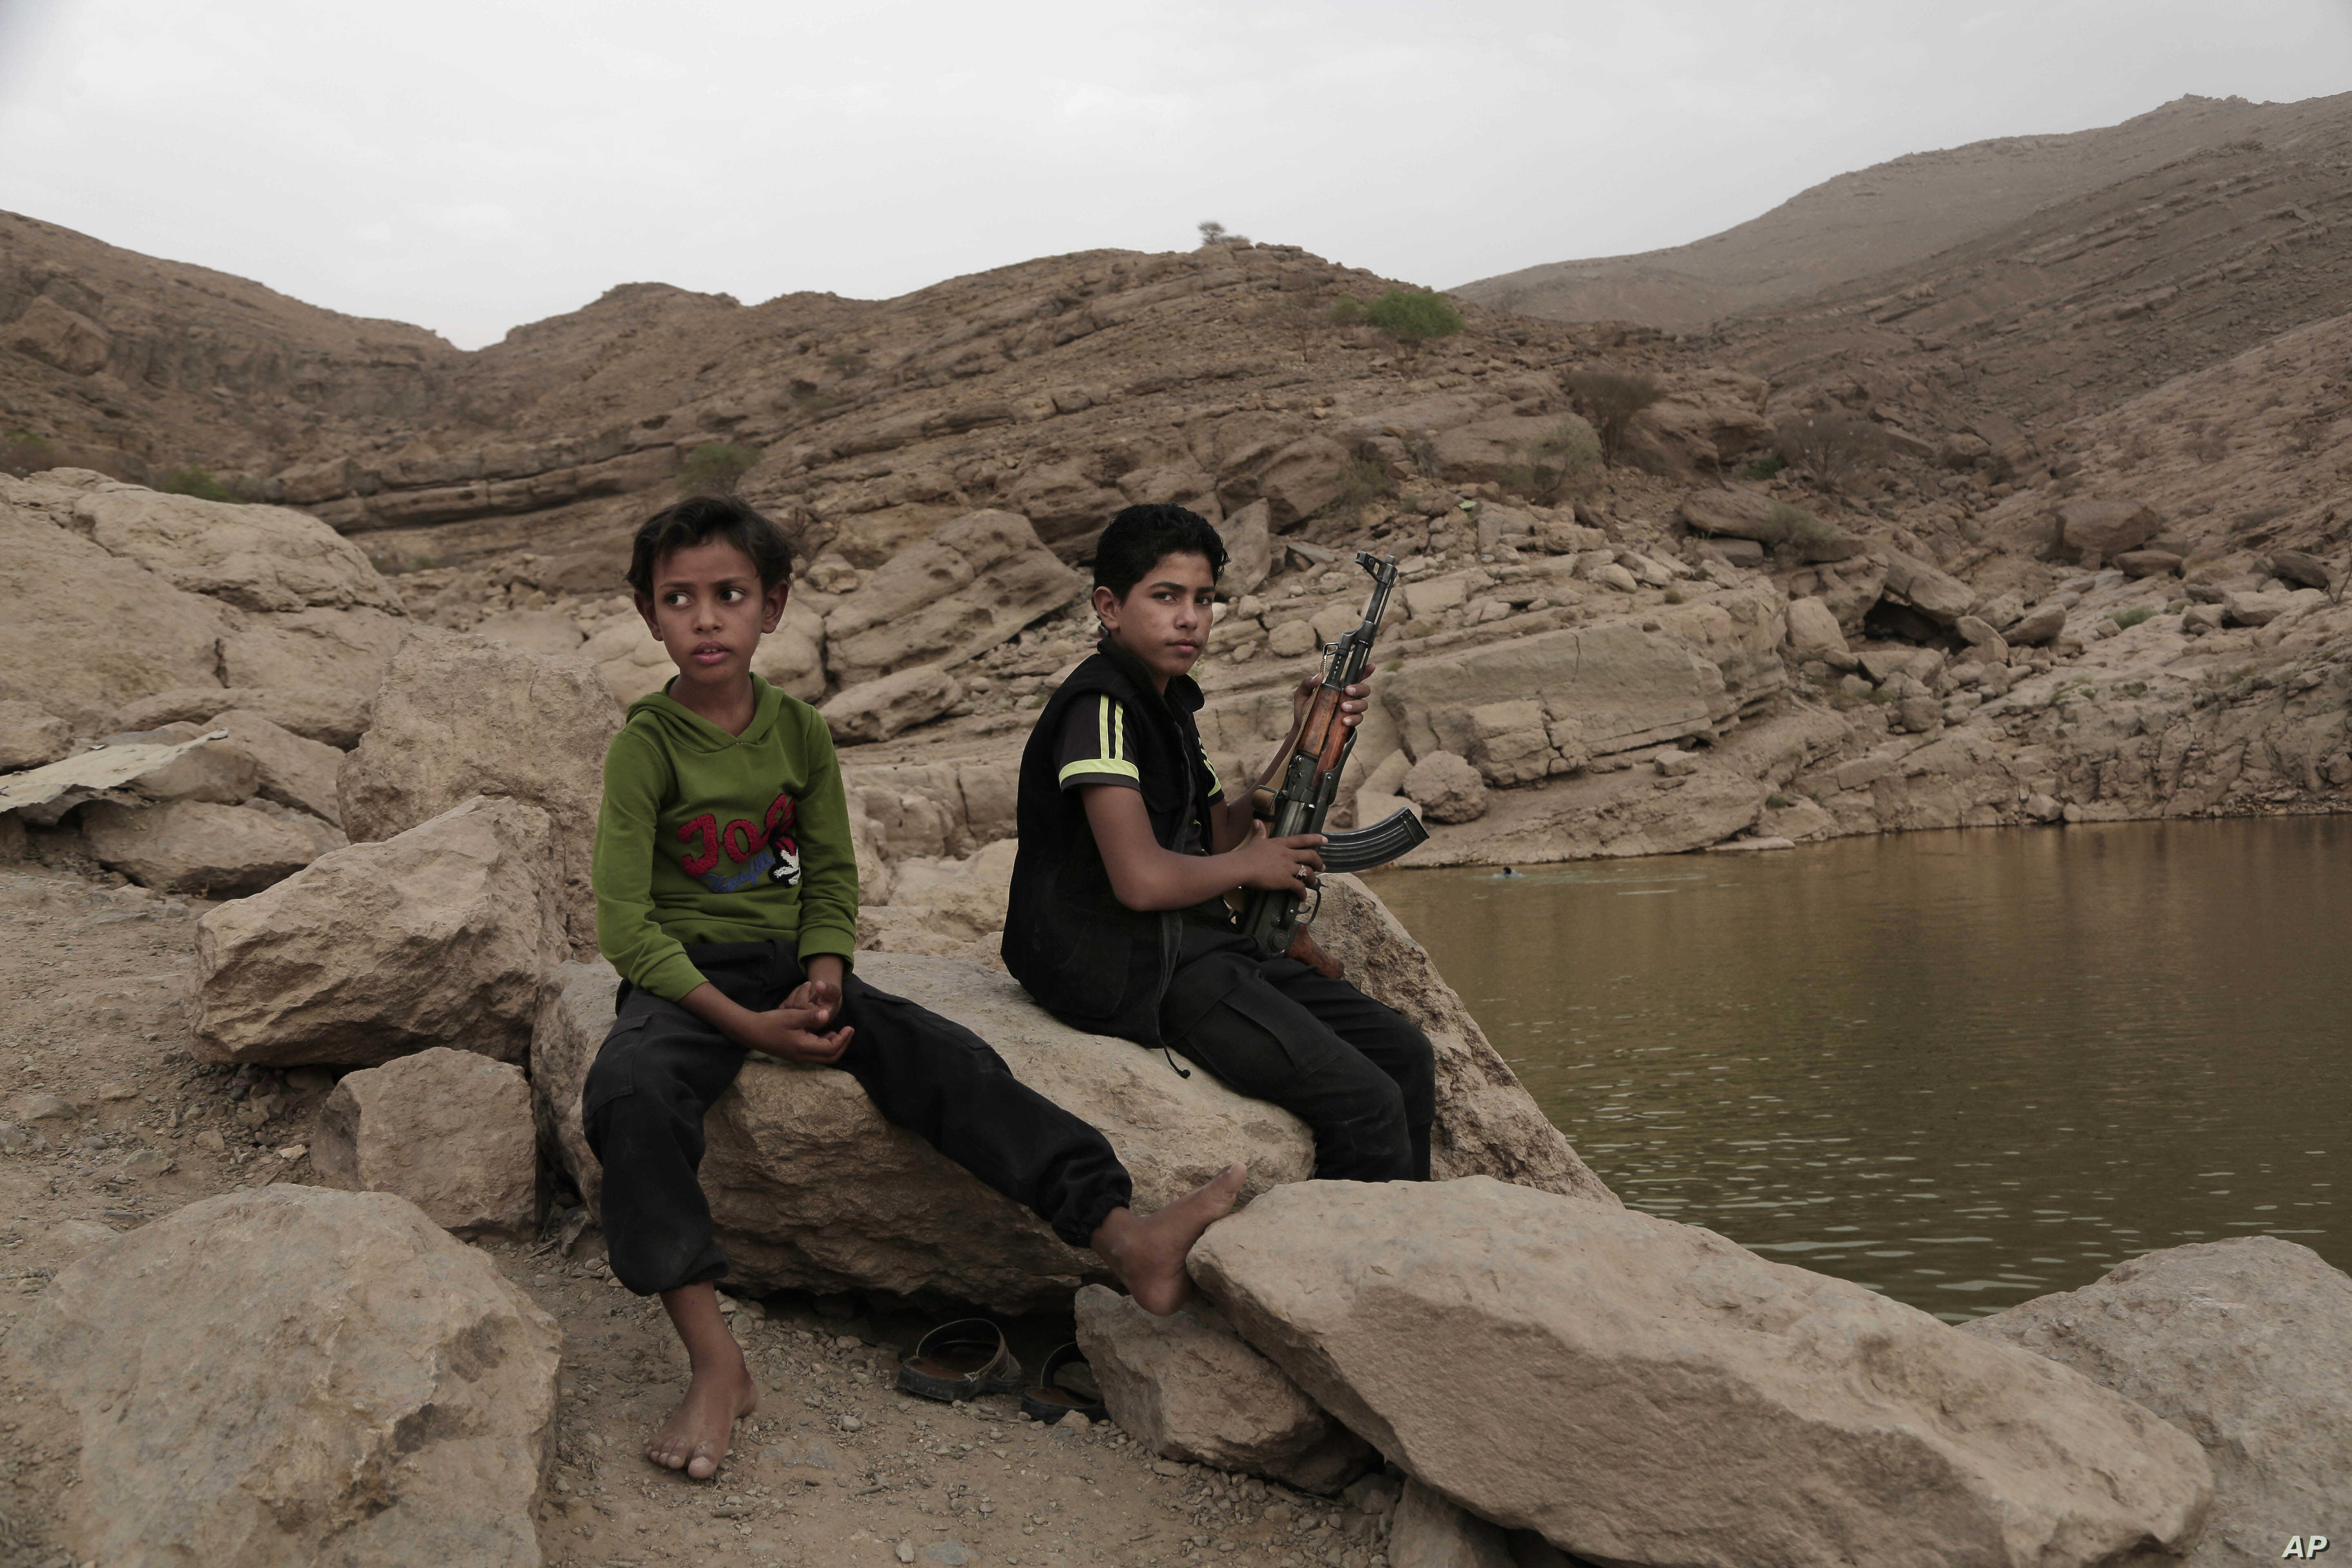 """In this July 30, 2018, photo, a 17 year-old boy holds his weapon in High dam in Marib, Yemen. Experts say child soldiers are """"the firewood"""" in the inferno of Yemen's civil war, trained to fight, kill and die on the front lines. (AP Photo/Narima..."""